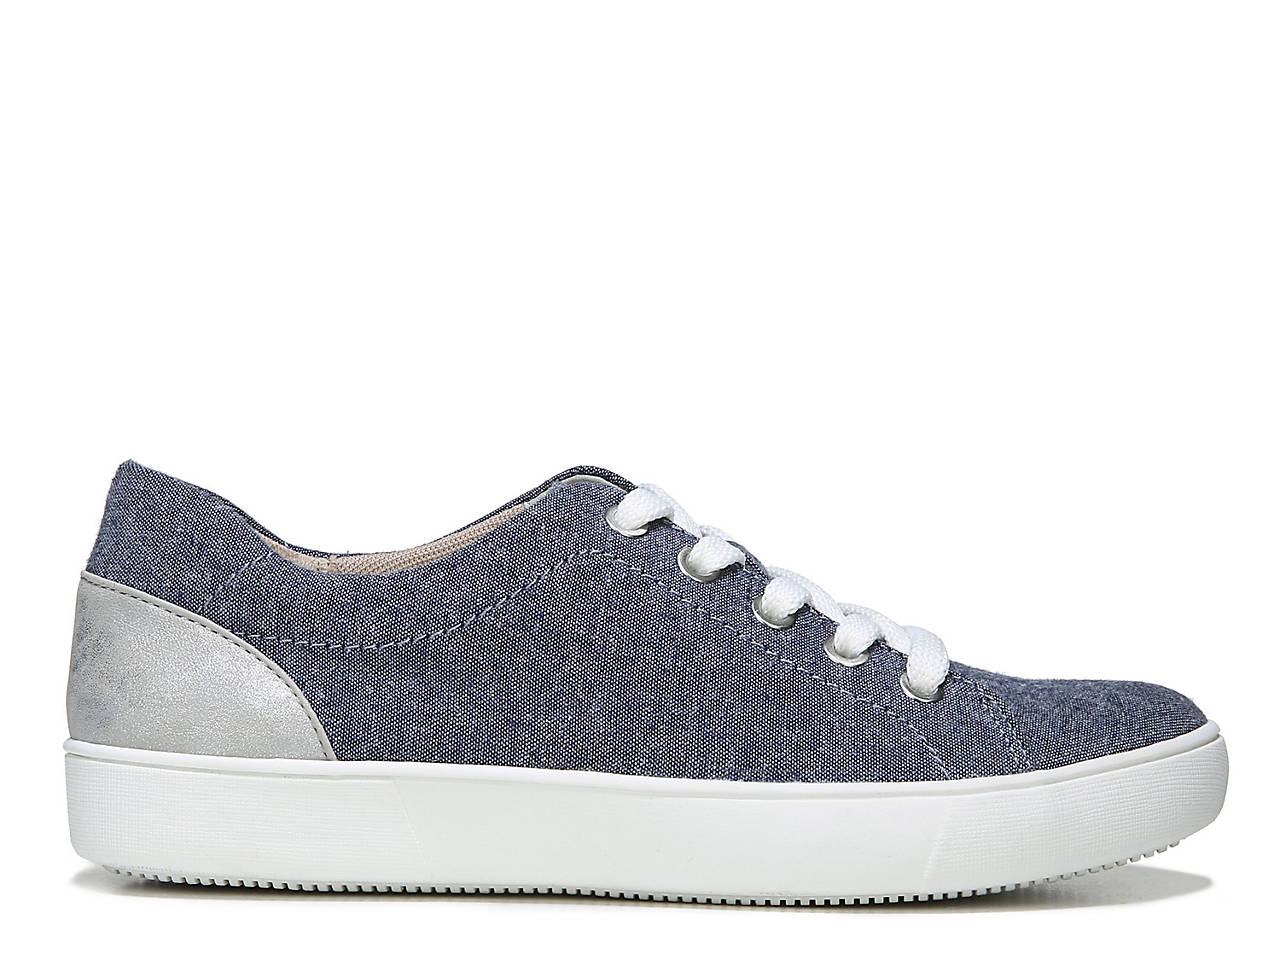 Lowest Price Naturalizer Porsha Sneaker(Women's) -Blue Denim Fabric Outlet Latest Collections aMKcz